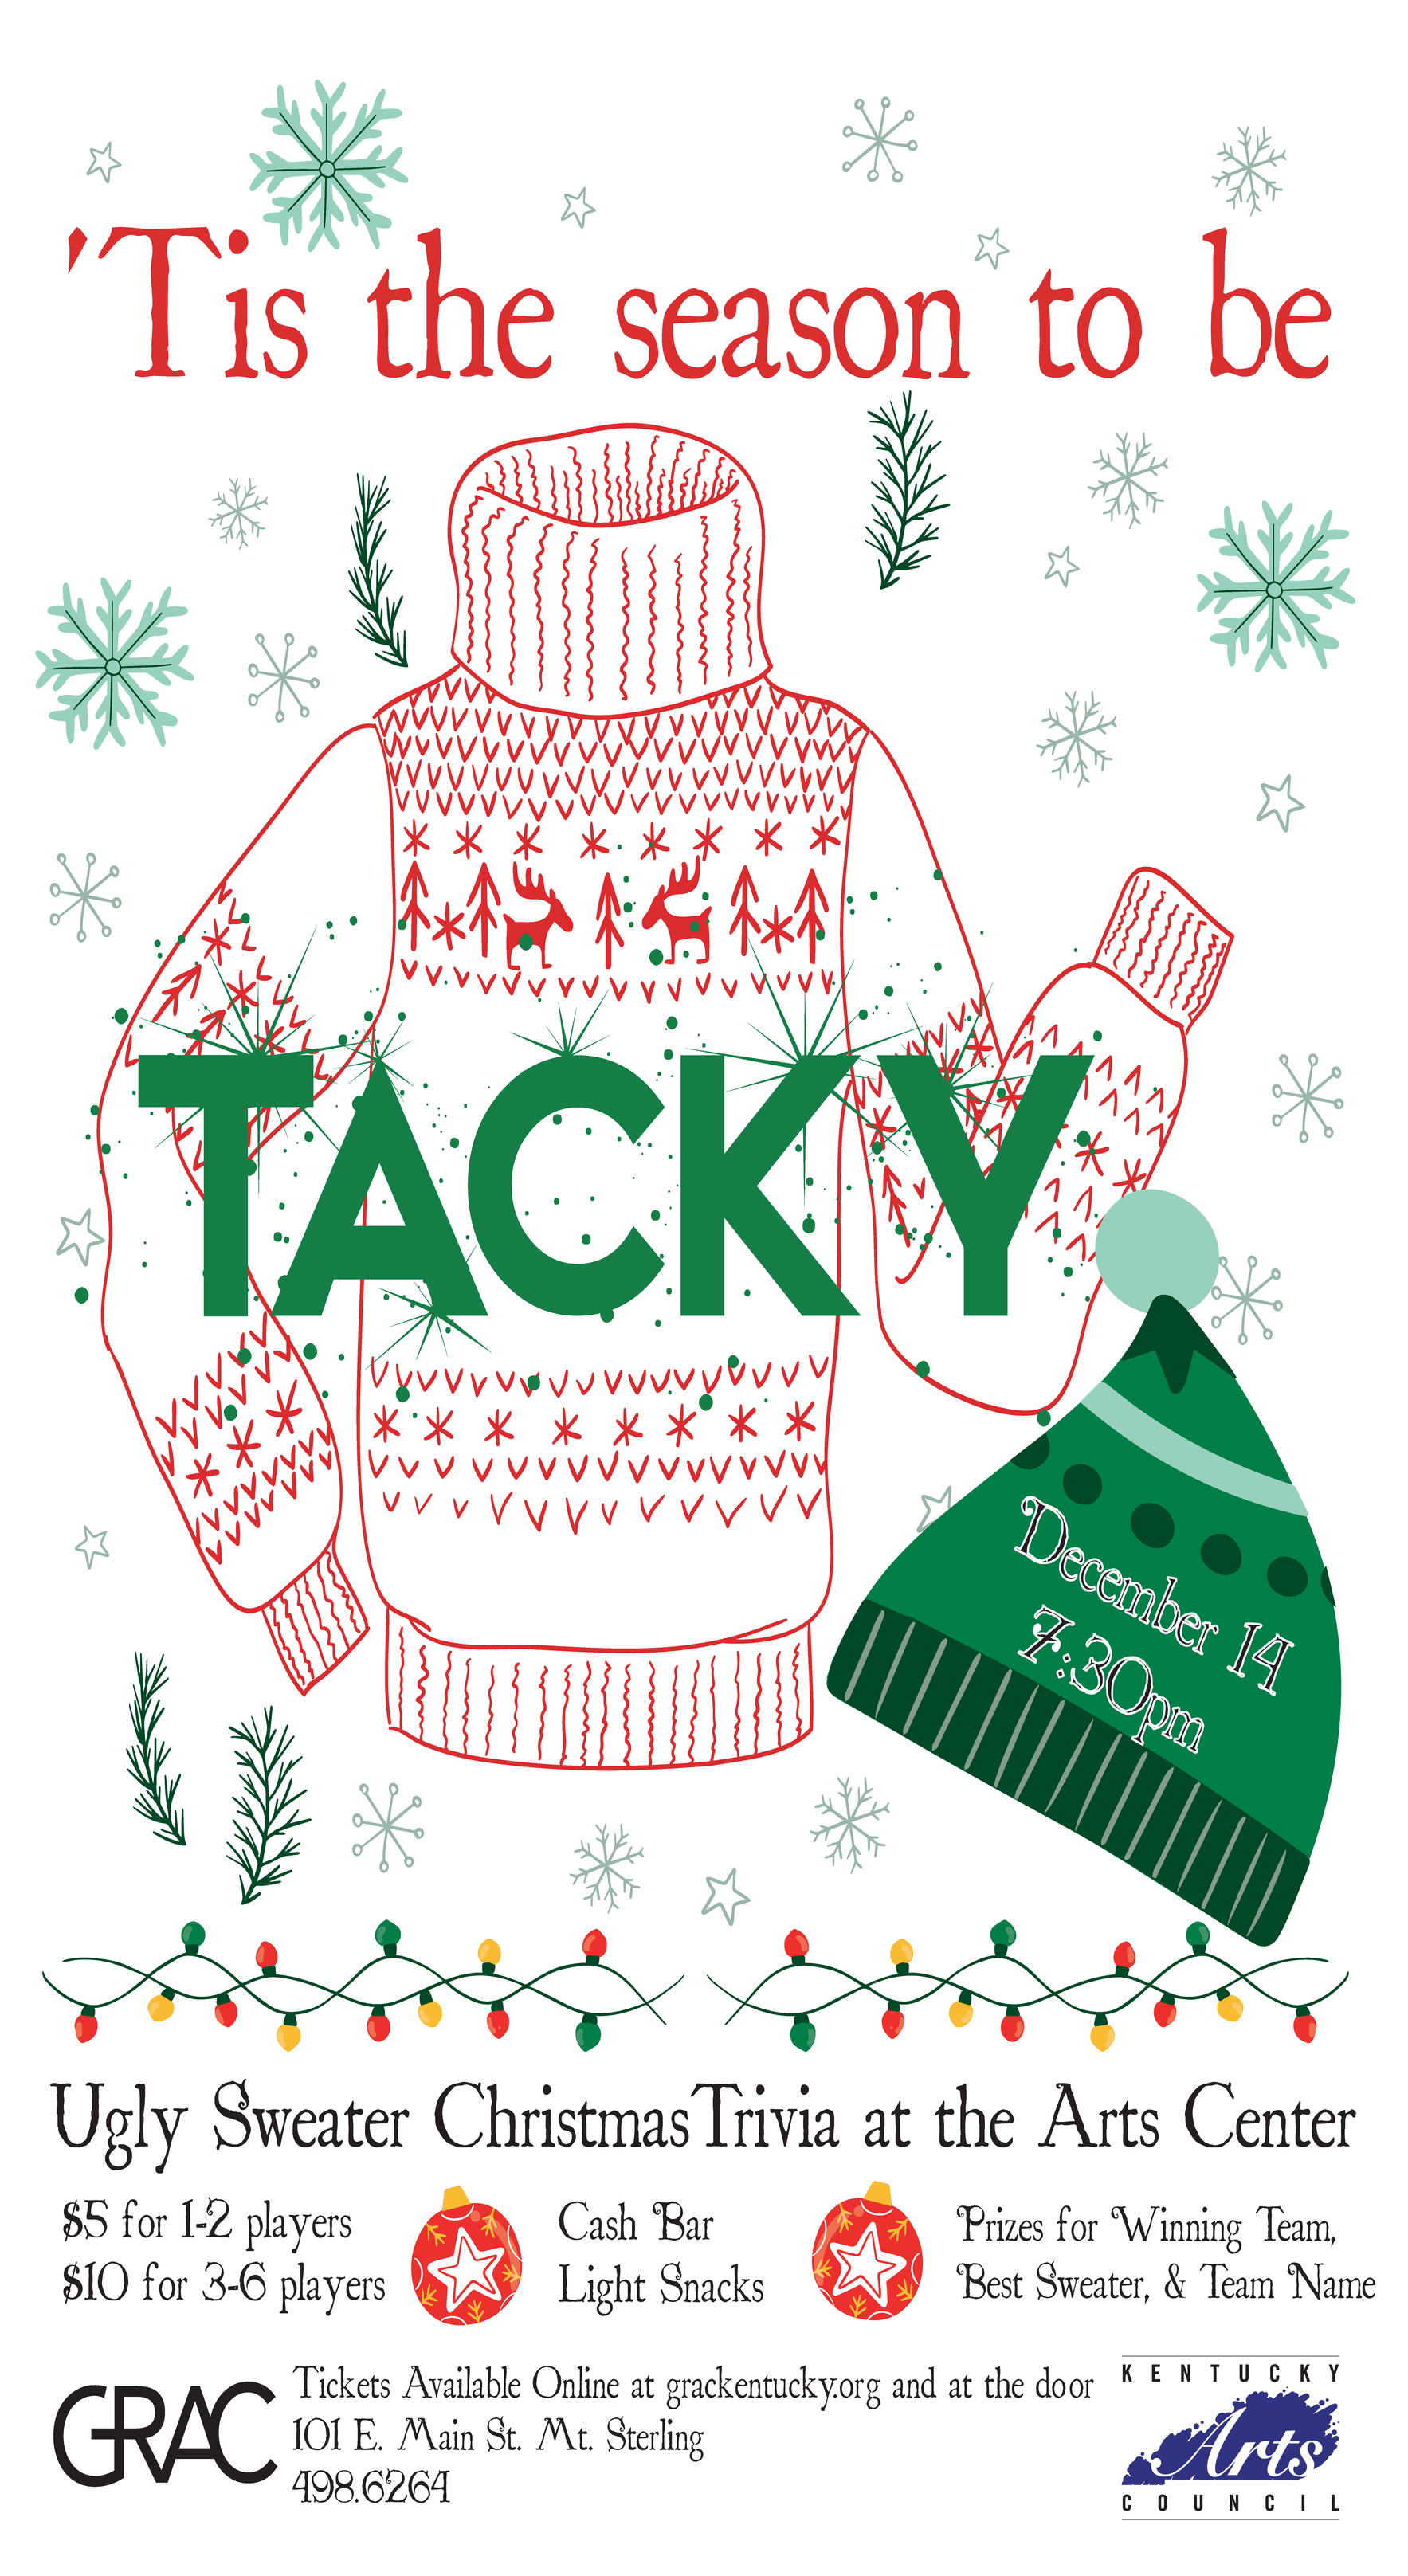 Ugly Sweater Christmas Trivia image